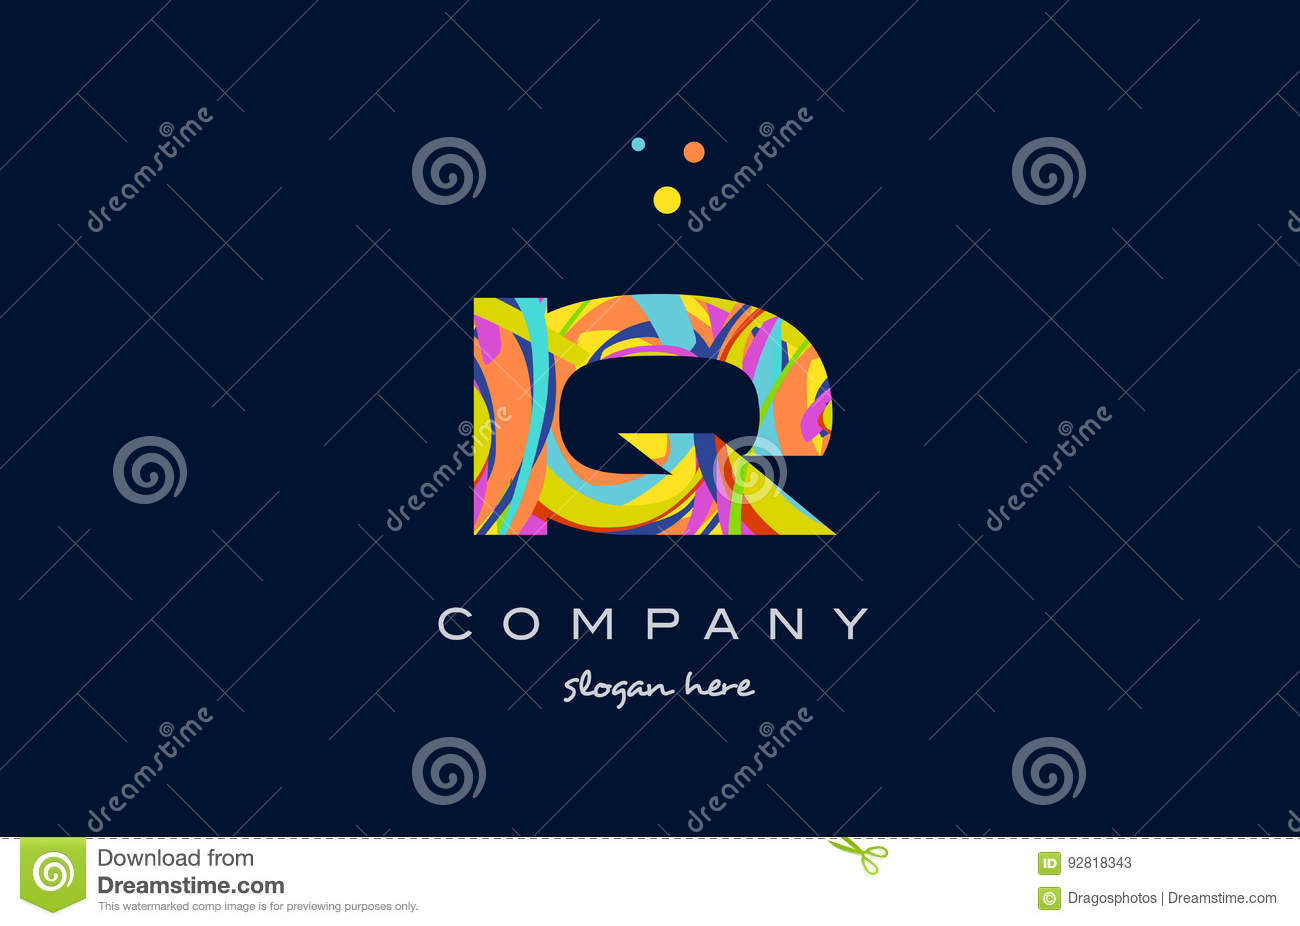 Iq template iq chart images reverse search paper template is iq i q colorful alphabet letter logo icon template vector stock baditri Images